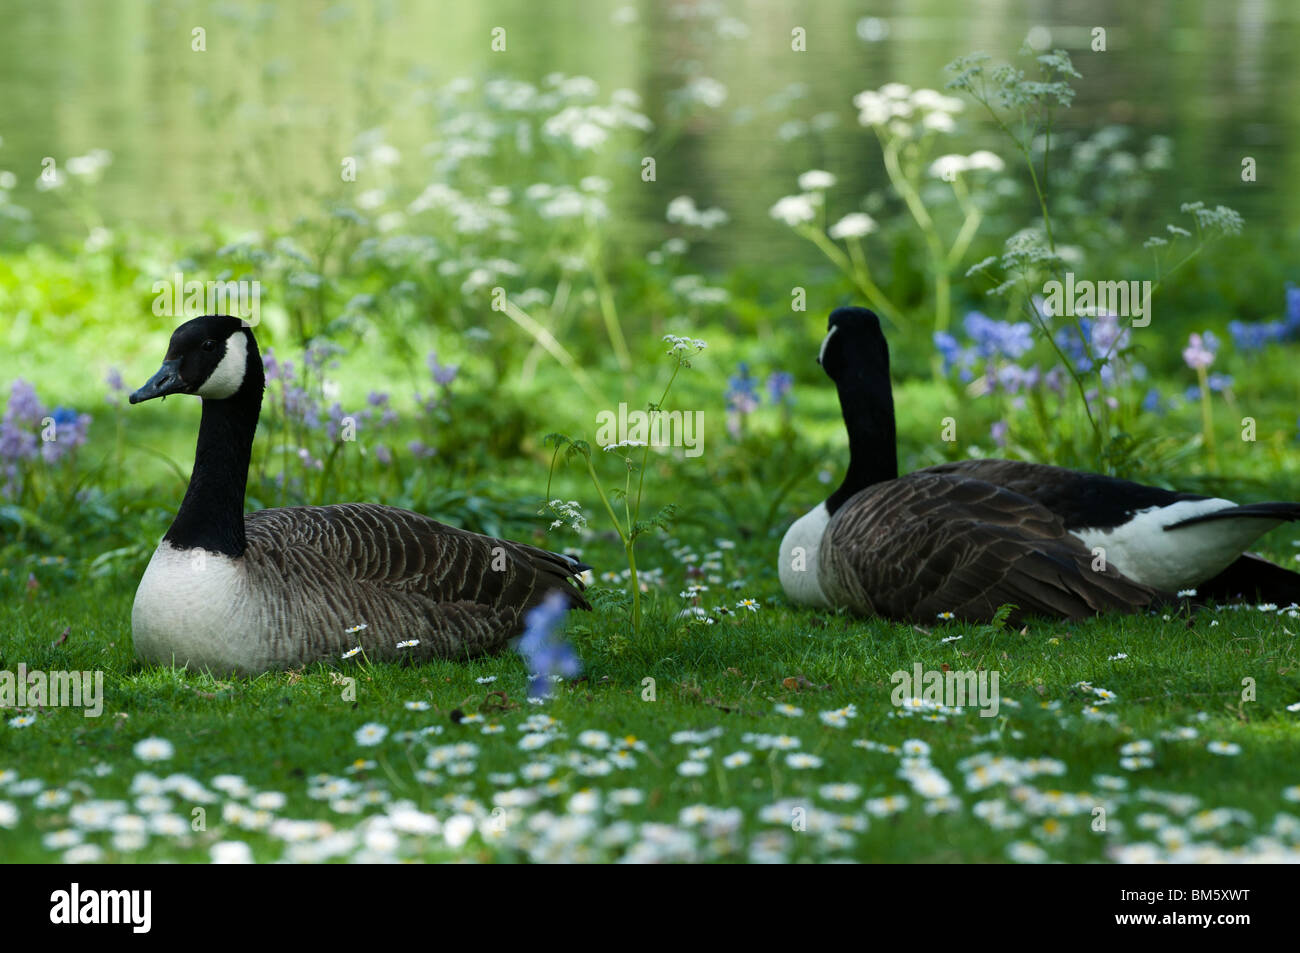 Two Sitting Geese in Spring - Stock Image